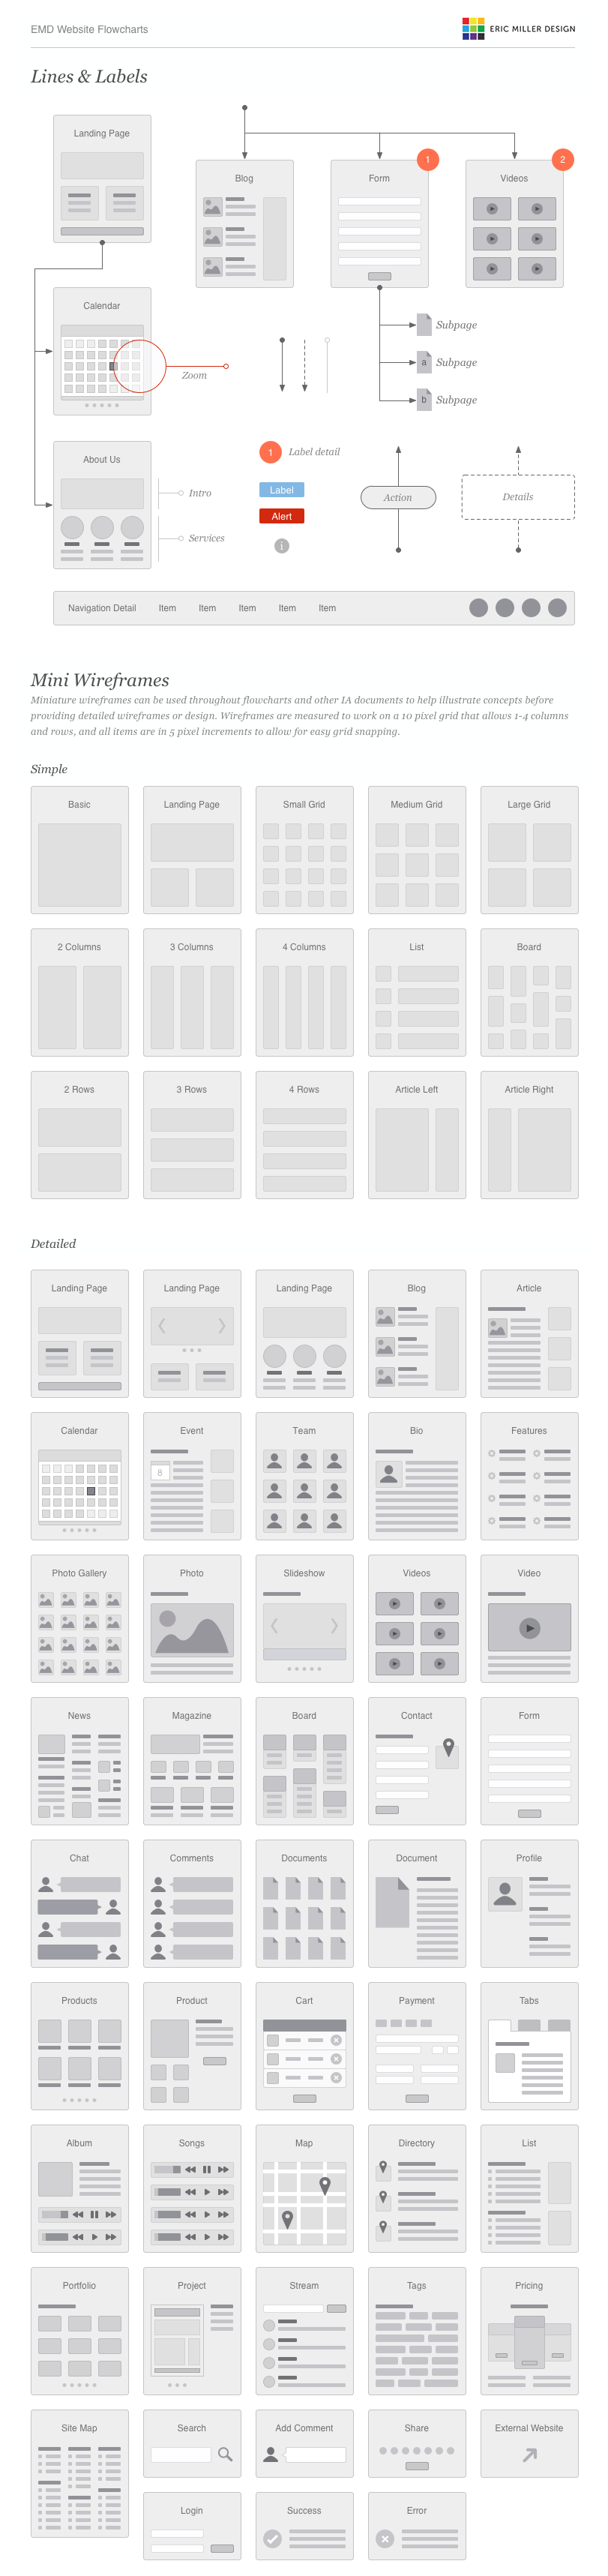 Preview for Website Flowcharts